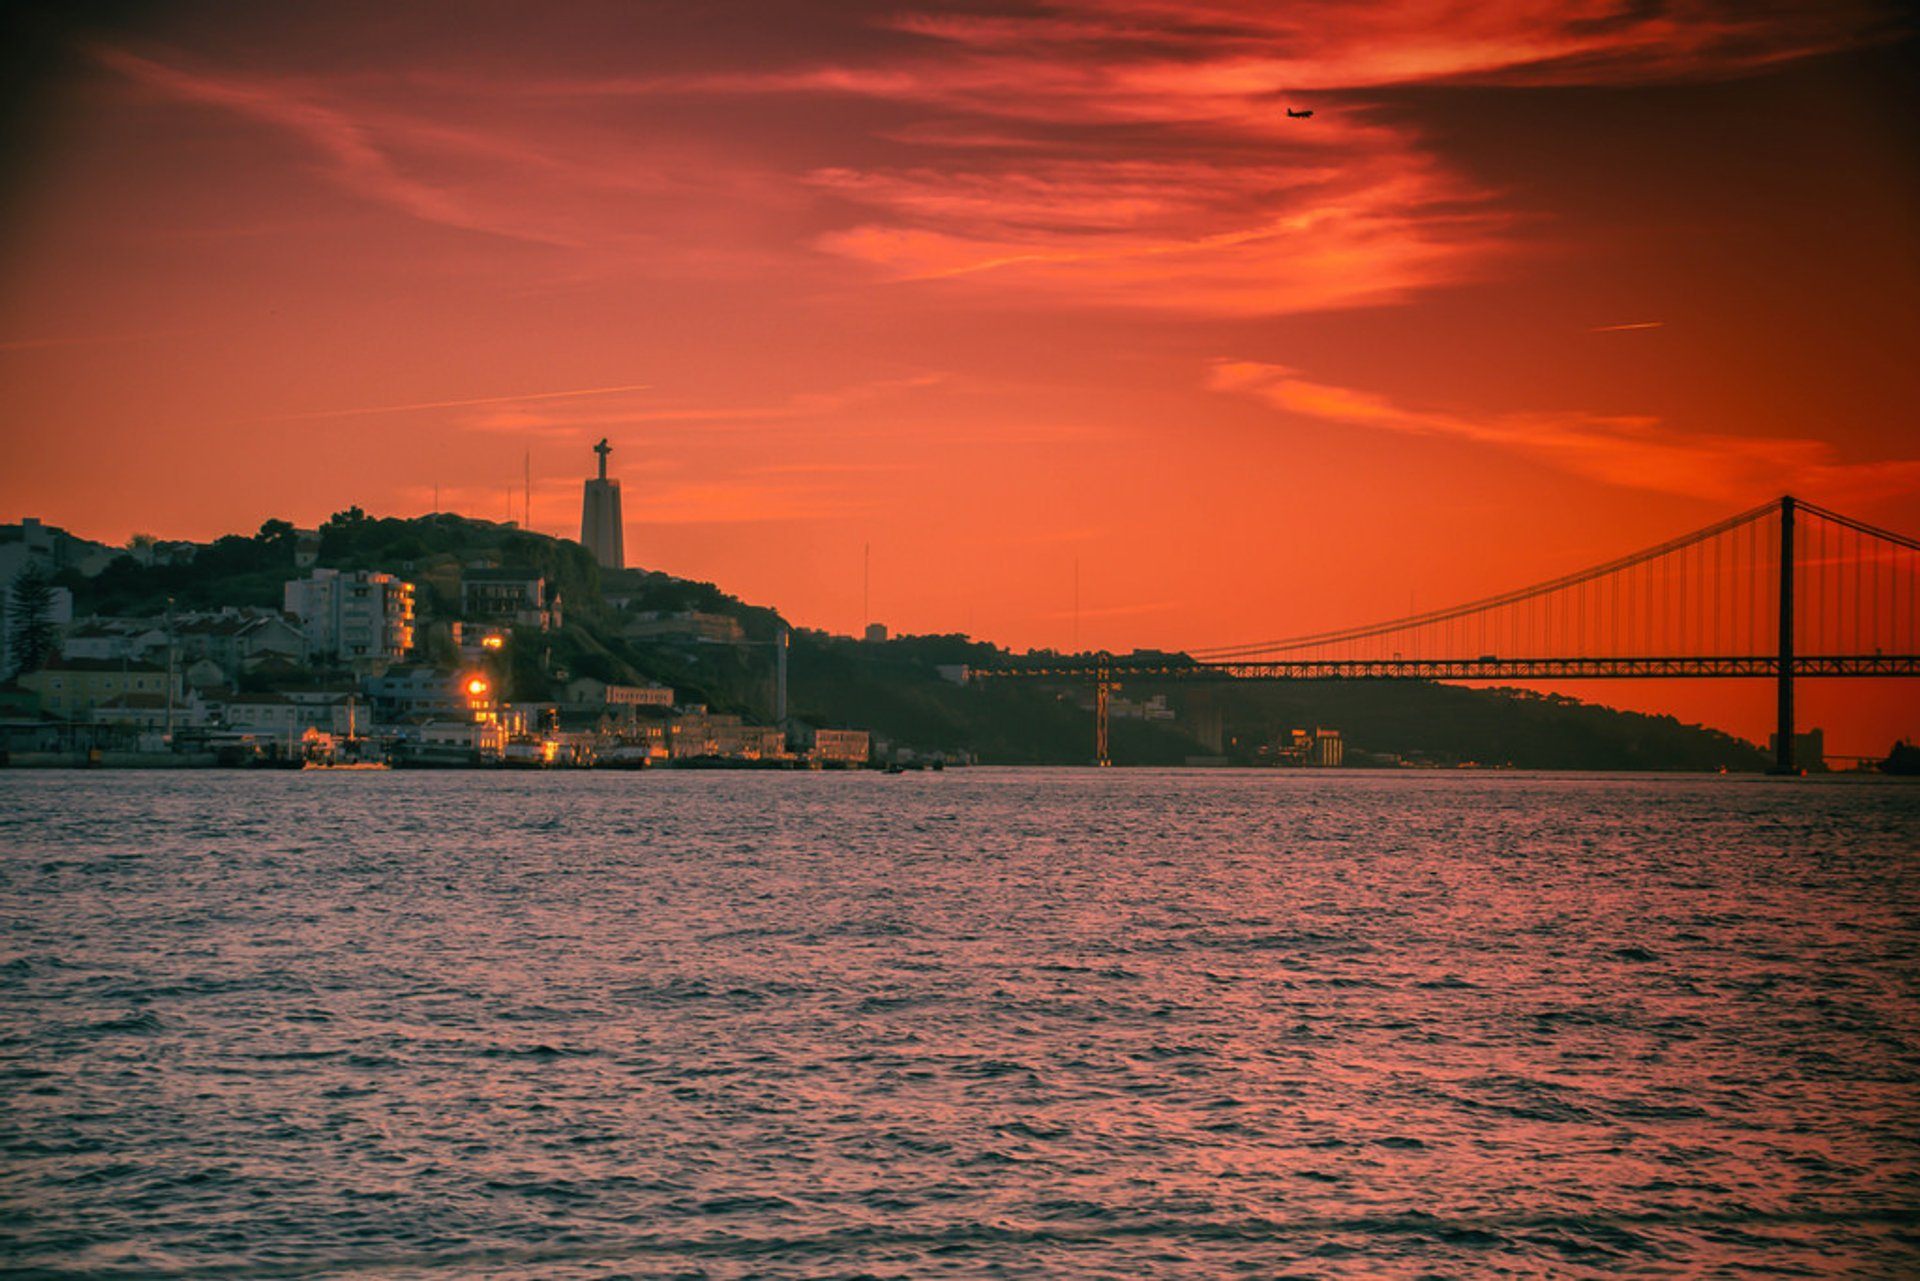 Tagus River Sunset Cruise in Lisbon - Best Season 2020